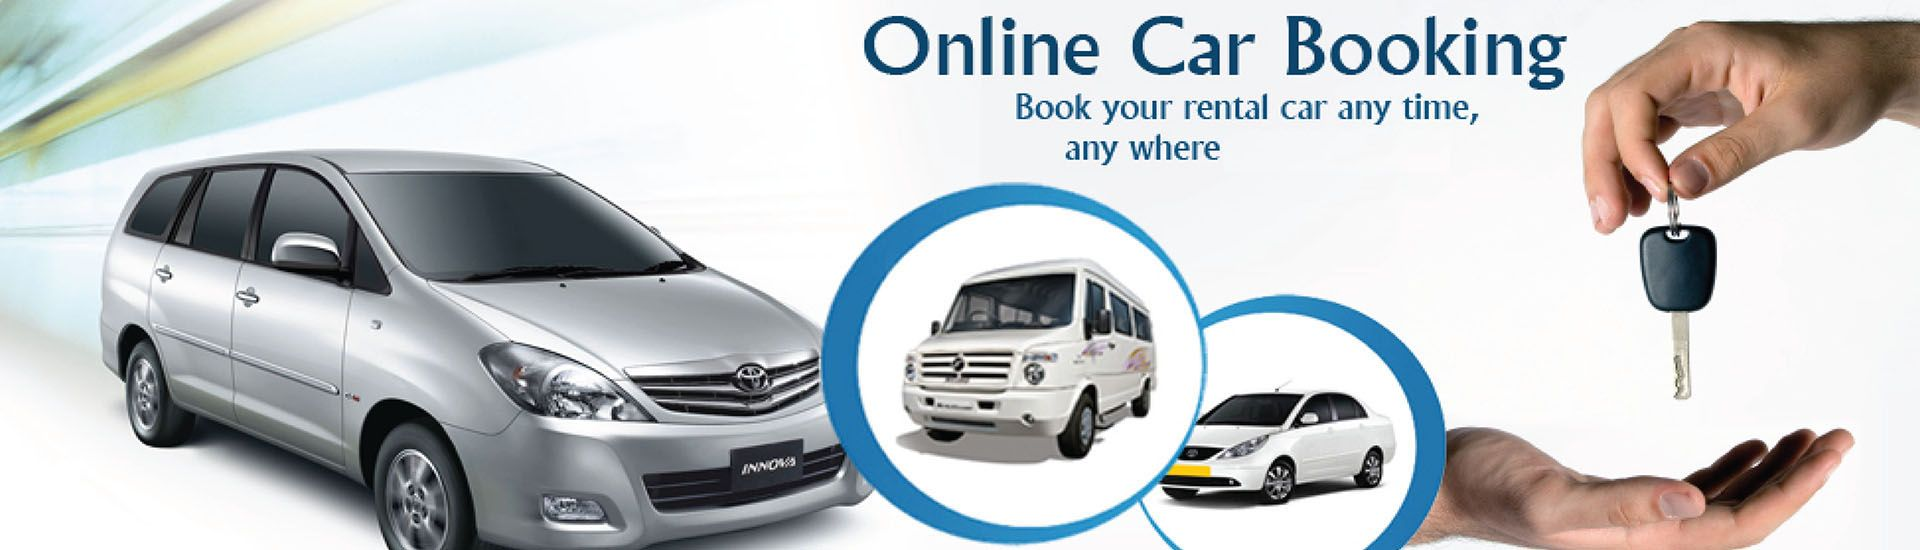 All Star Rent A Car Is An Auto Rental Service And Car Care Center Located In Denver Co We Have Over 24 Years Car Rental Service Car Rental Company Car Rental